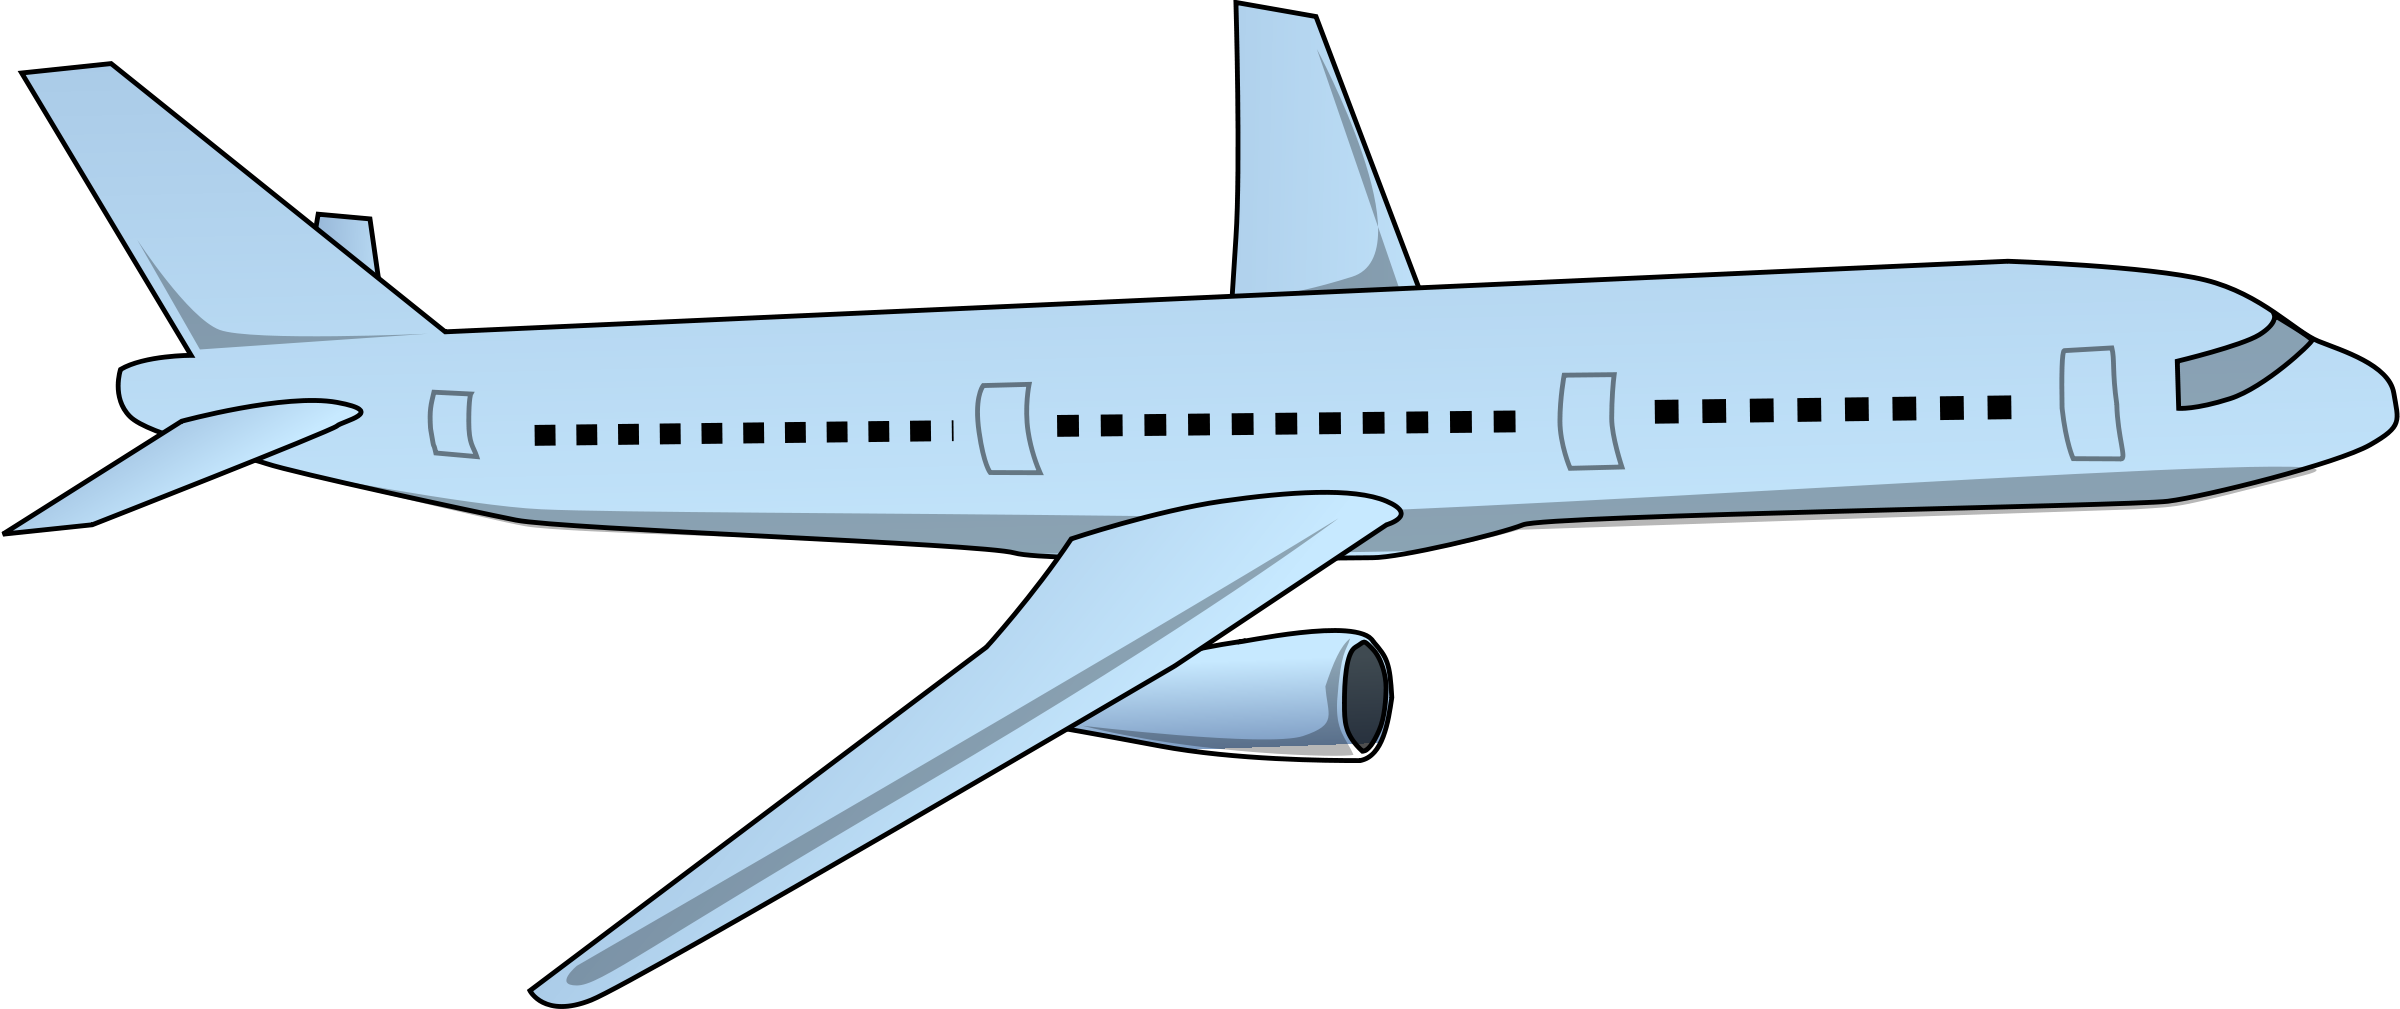 Airplane Clipart Transparent Background